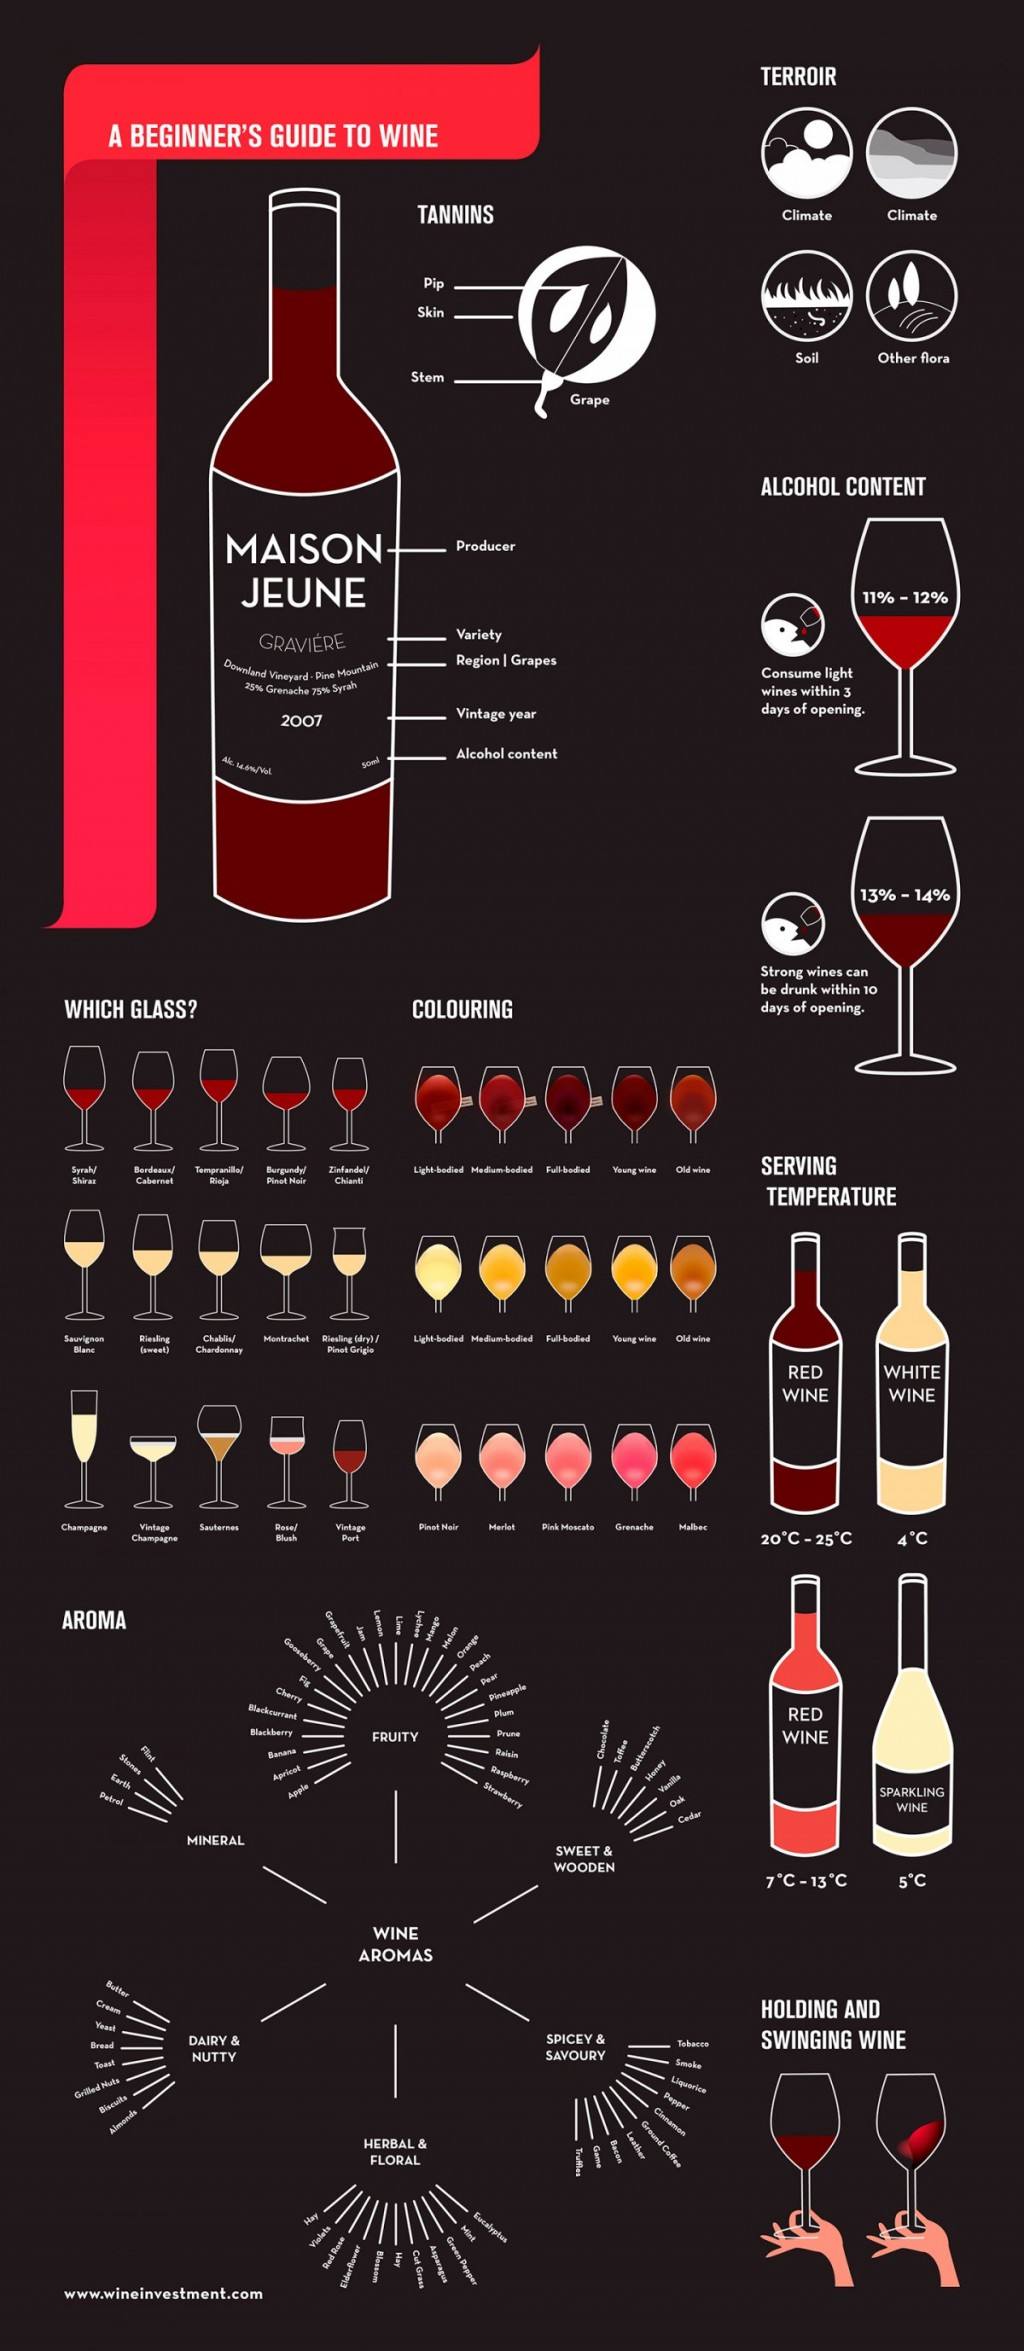 How to sound like a wine expert in 9 steps